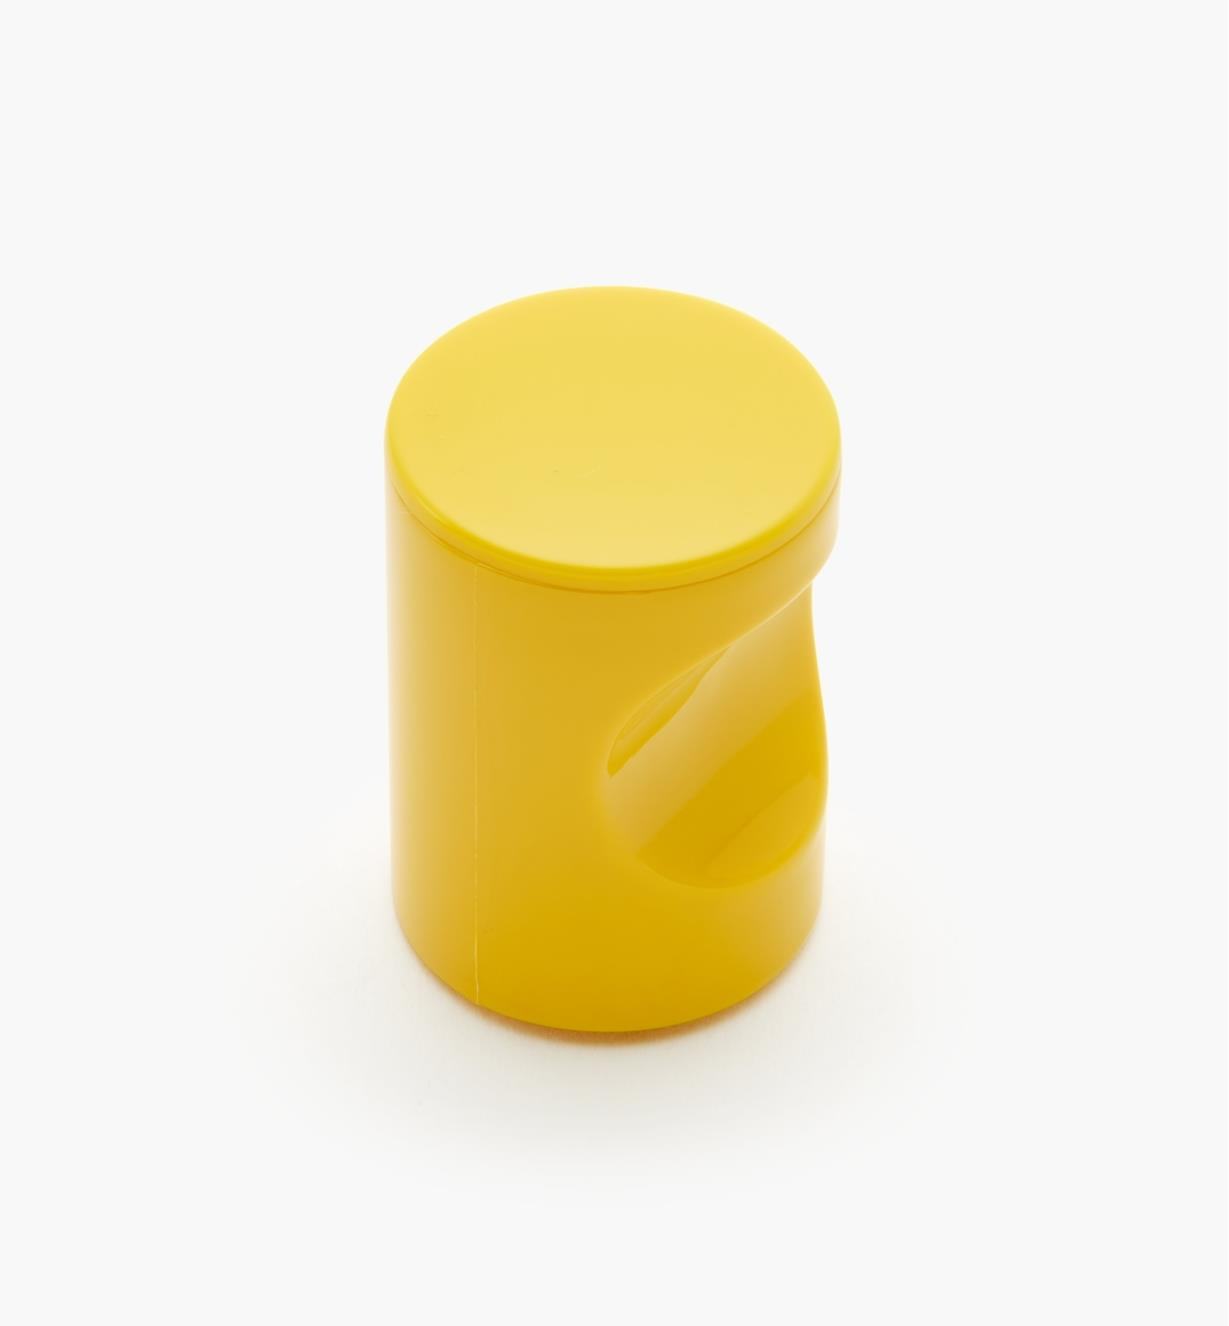 "01W4527 - 20mm x 1 11/16"" Yellow Notched Pull/Knob"